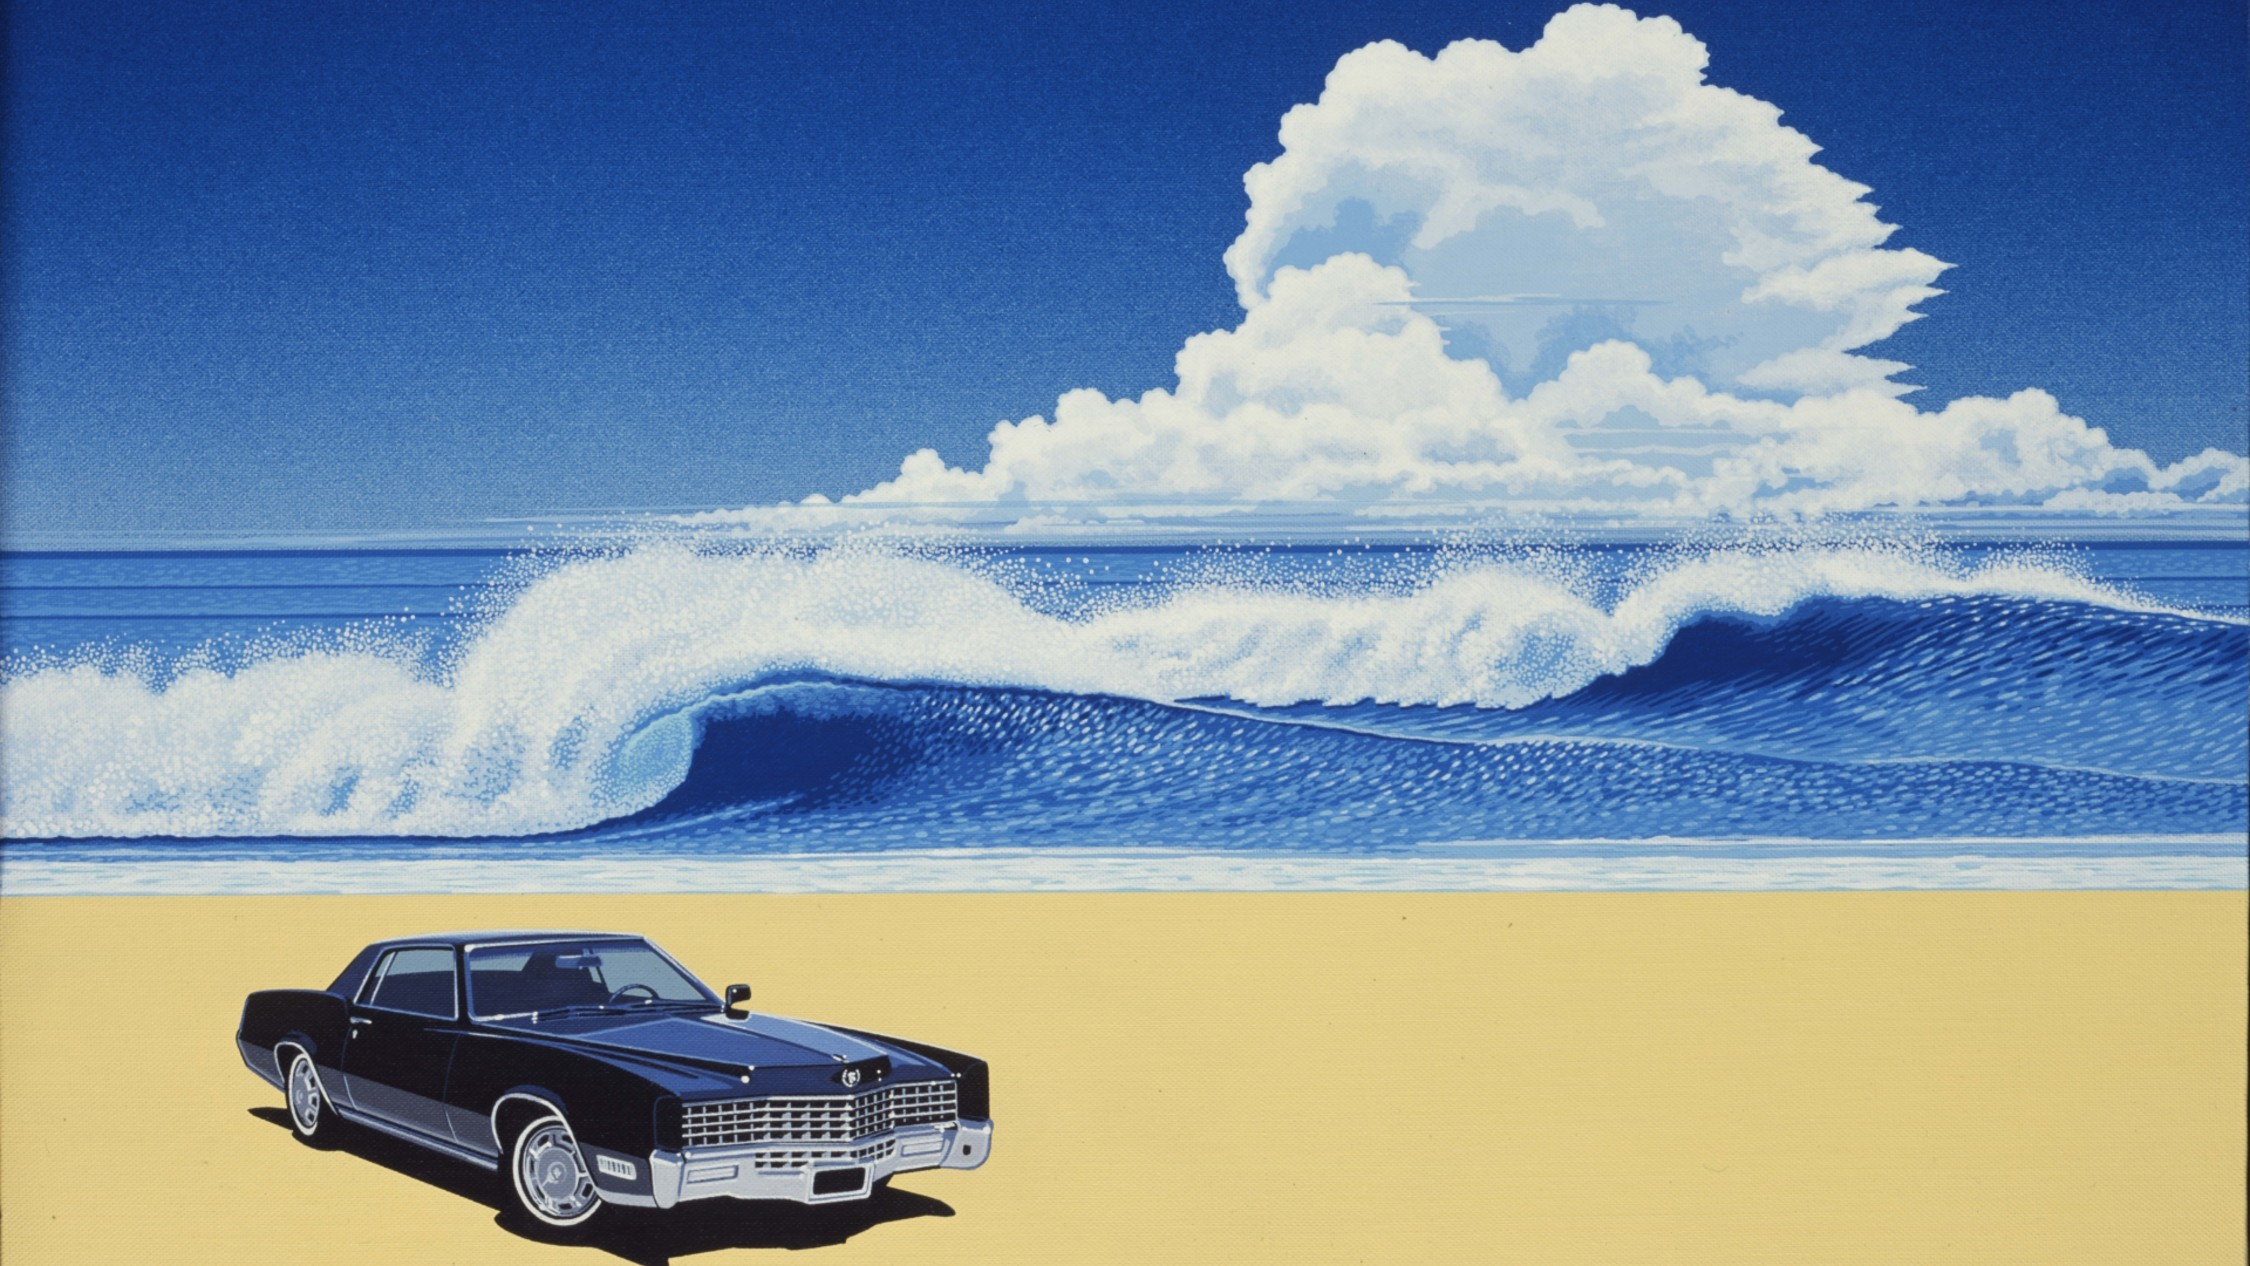 A painting of a dark blue boxy car on a sandy beach with big surf in a blue ocean and a huge cloud in a big blue sky